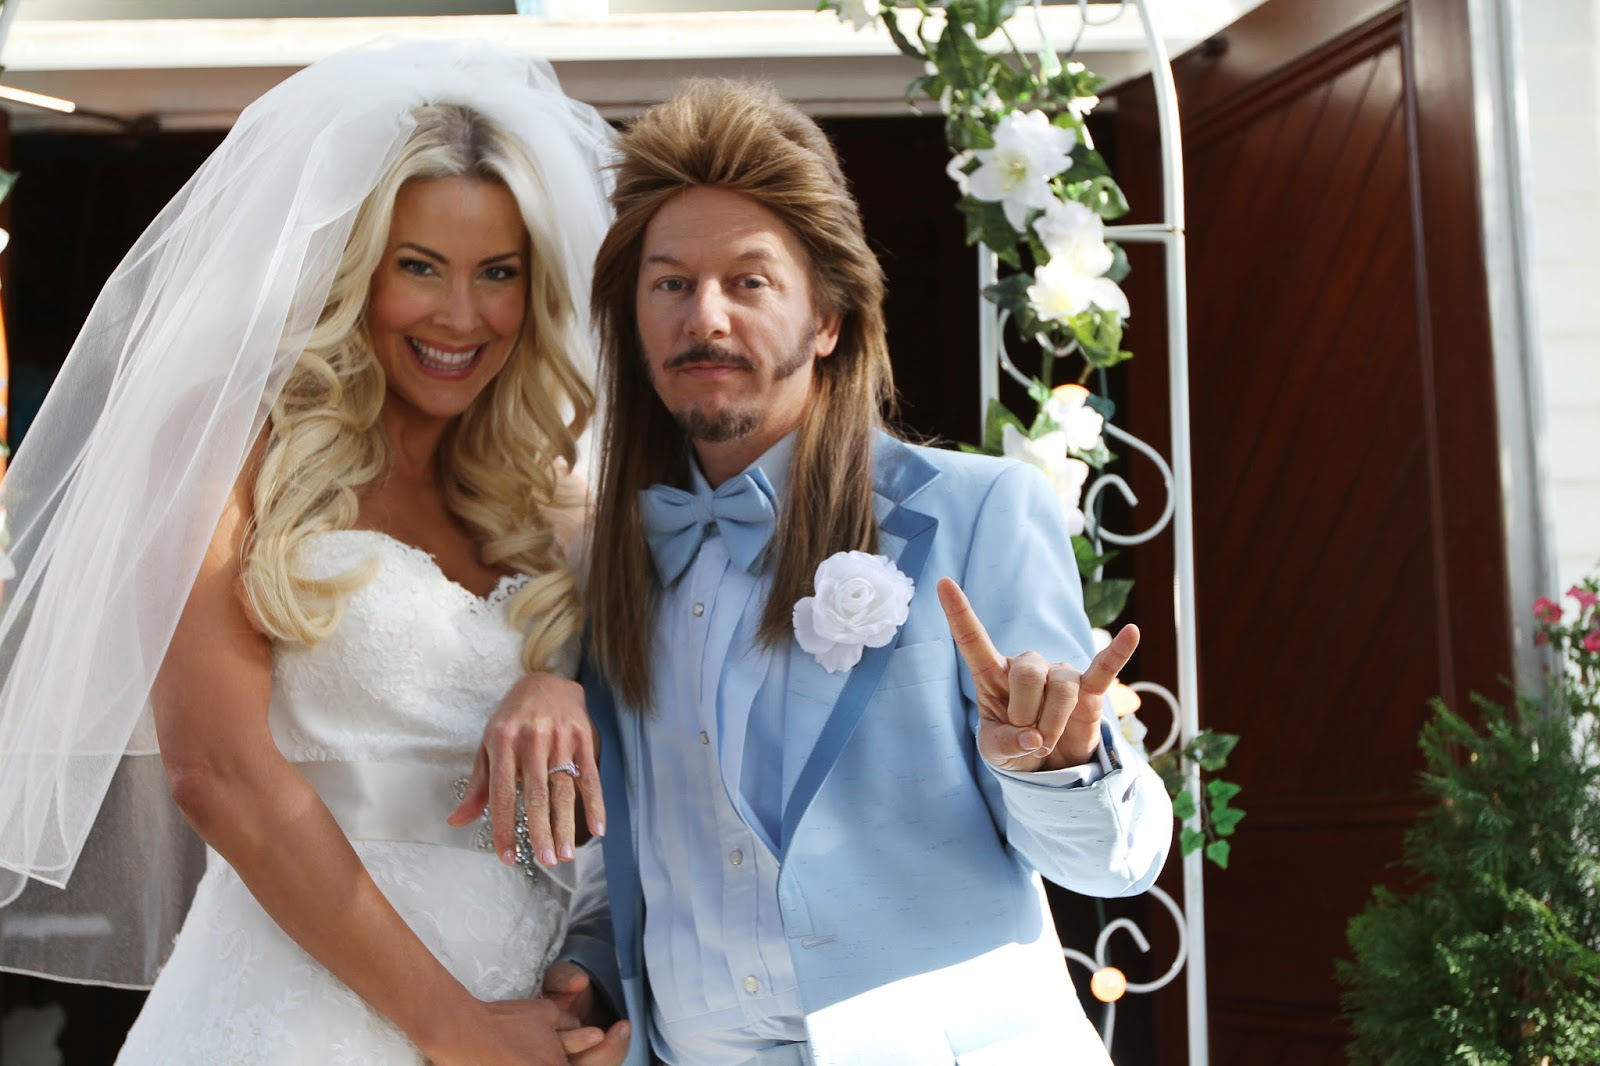 Laura steele tom griswold wedding - Joe Dirt 2 Beatiful Loser Preview Hd David Spade